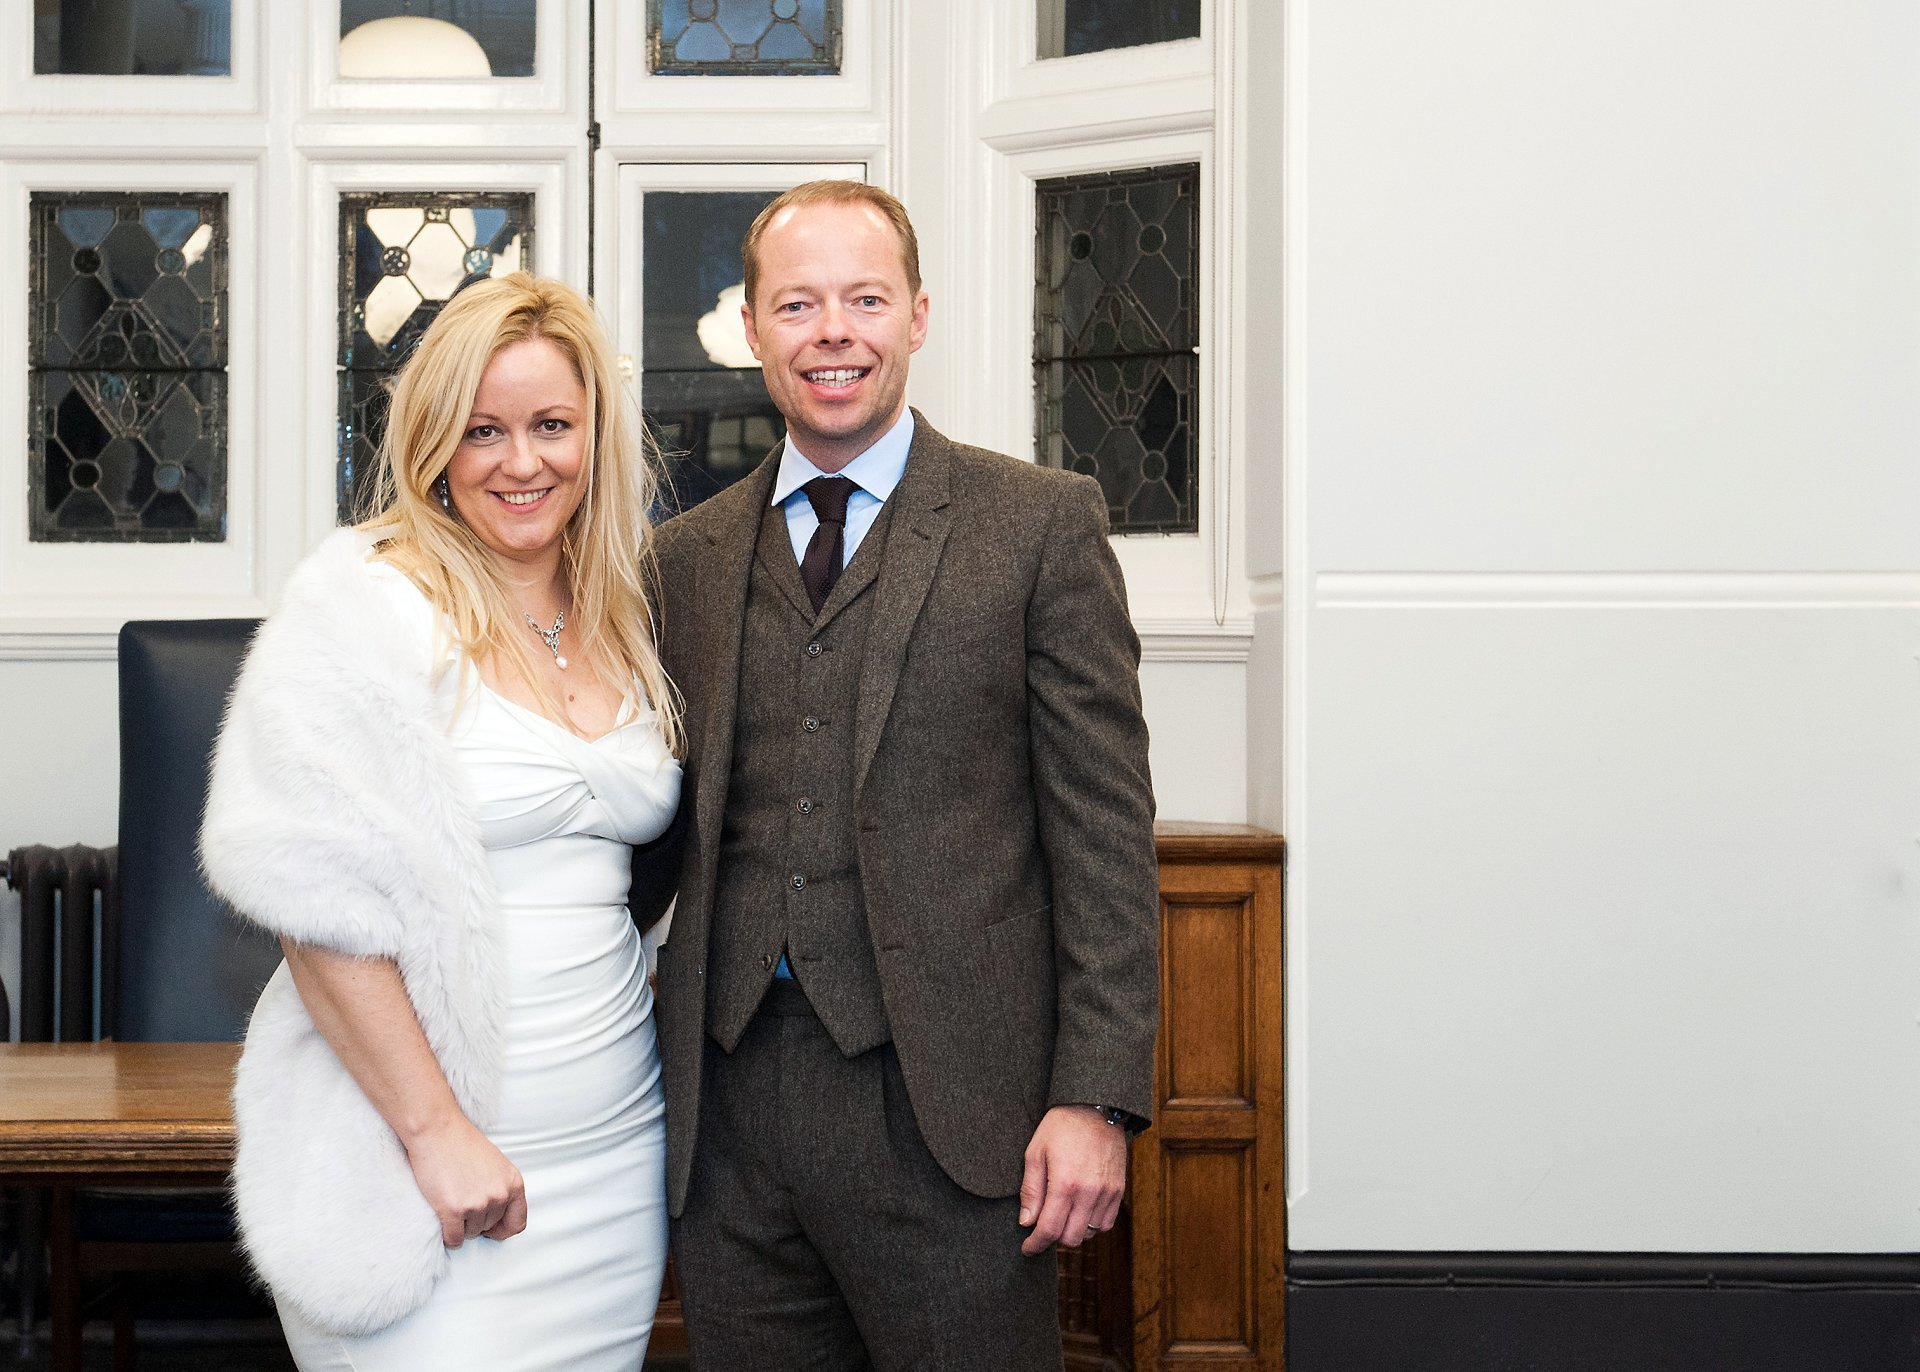 A bride and groom in the Mayfair Room at Westminster Register Office after their Christmas wedding in December, the photogrpah showing that it is dark outside